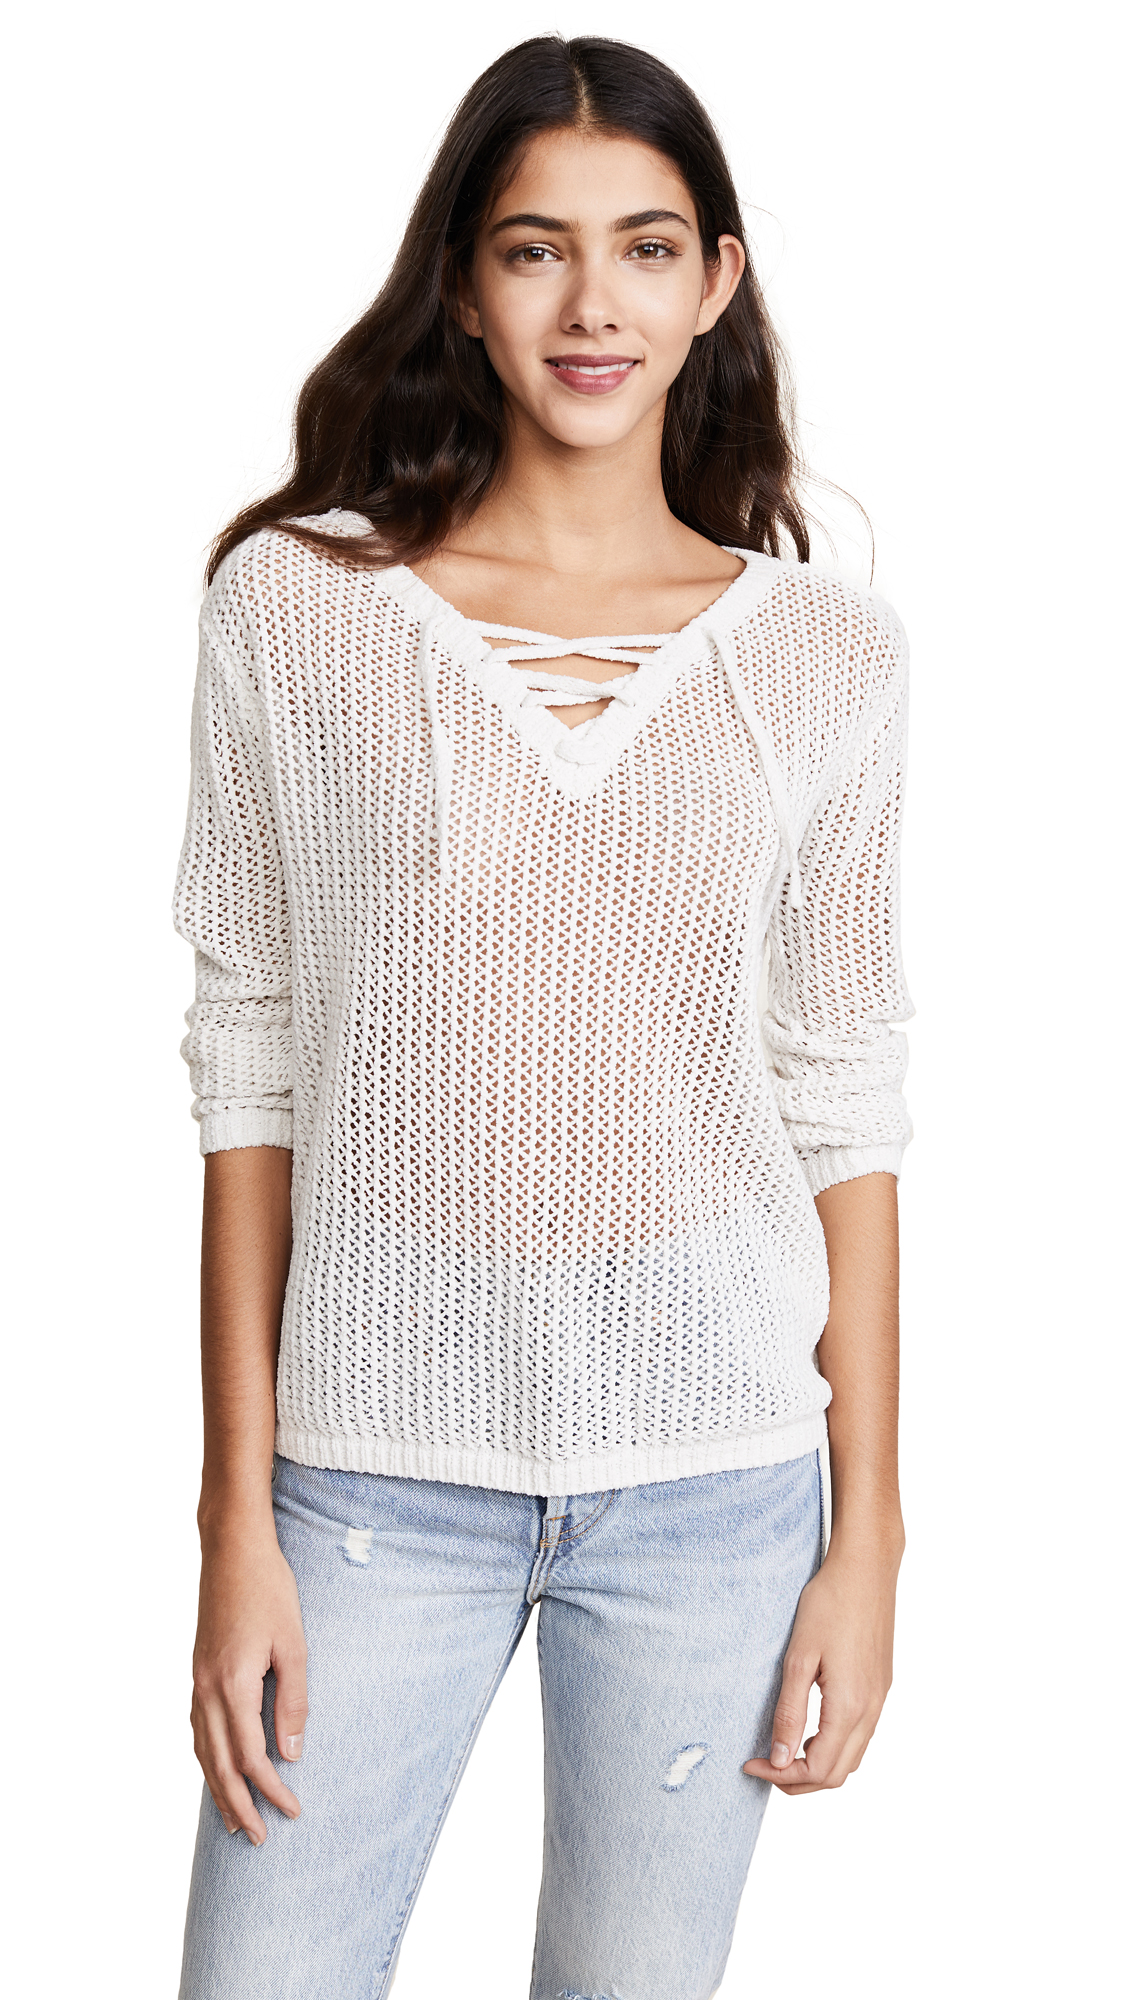 BB Dakota Lily Lace Up Sweater - Dirty White